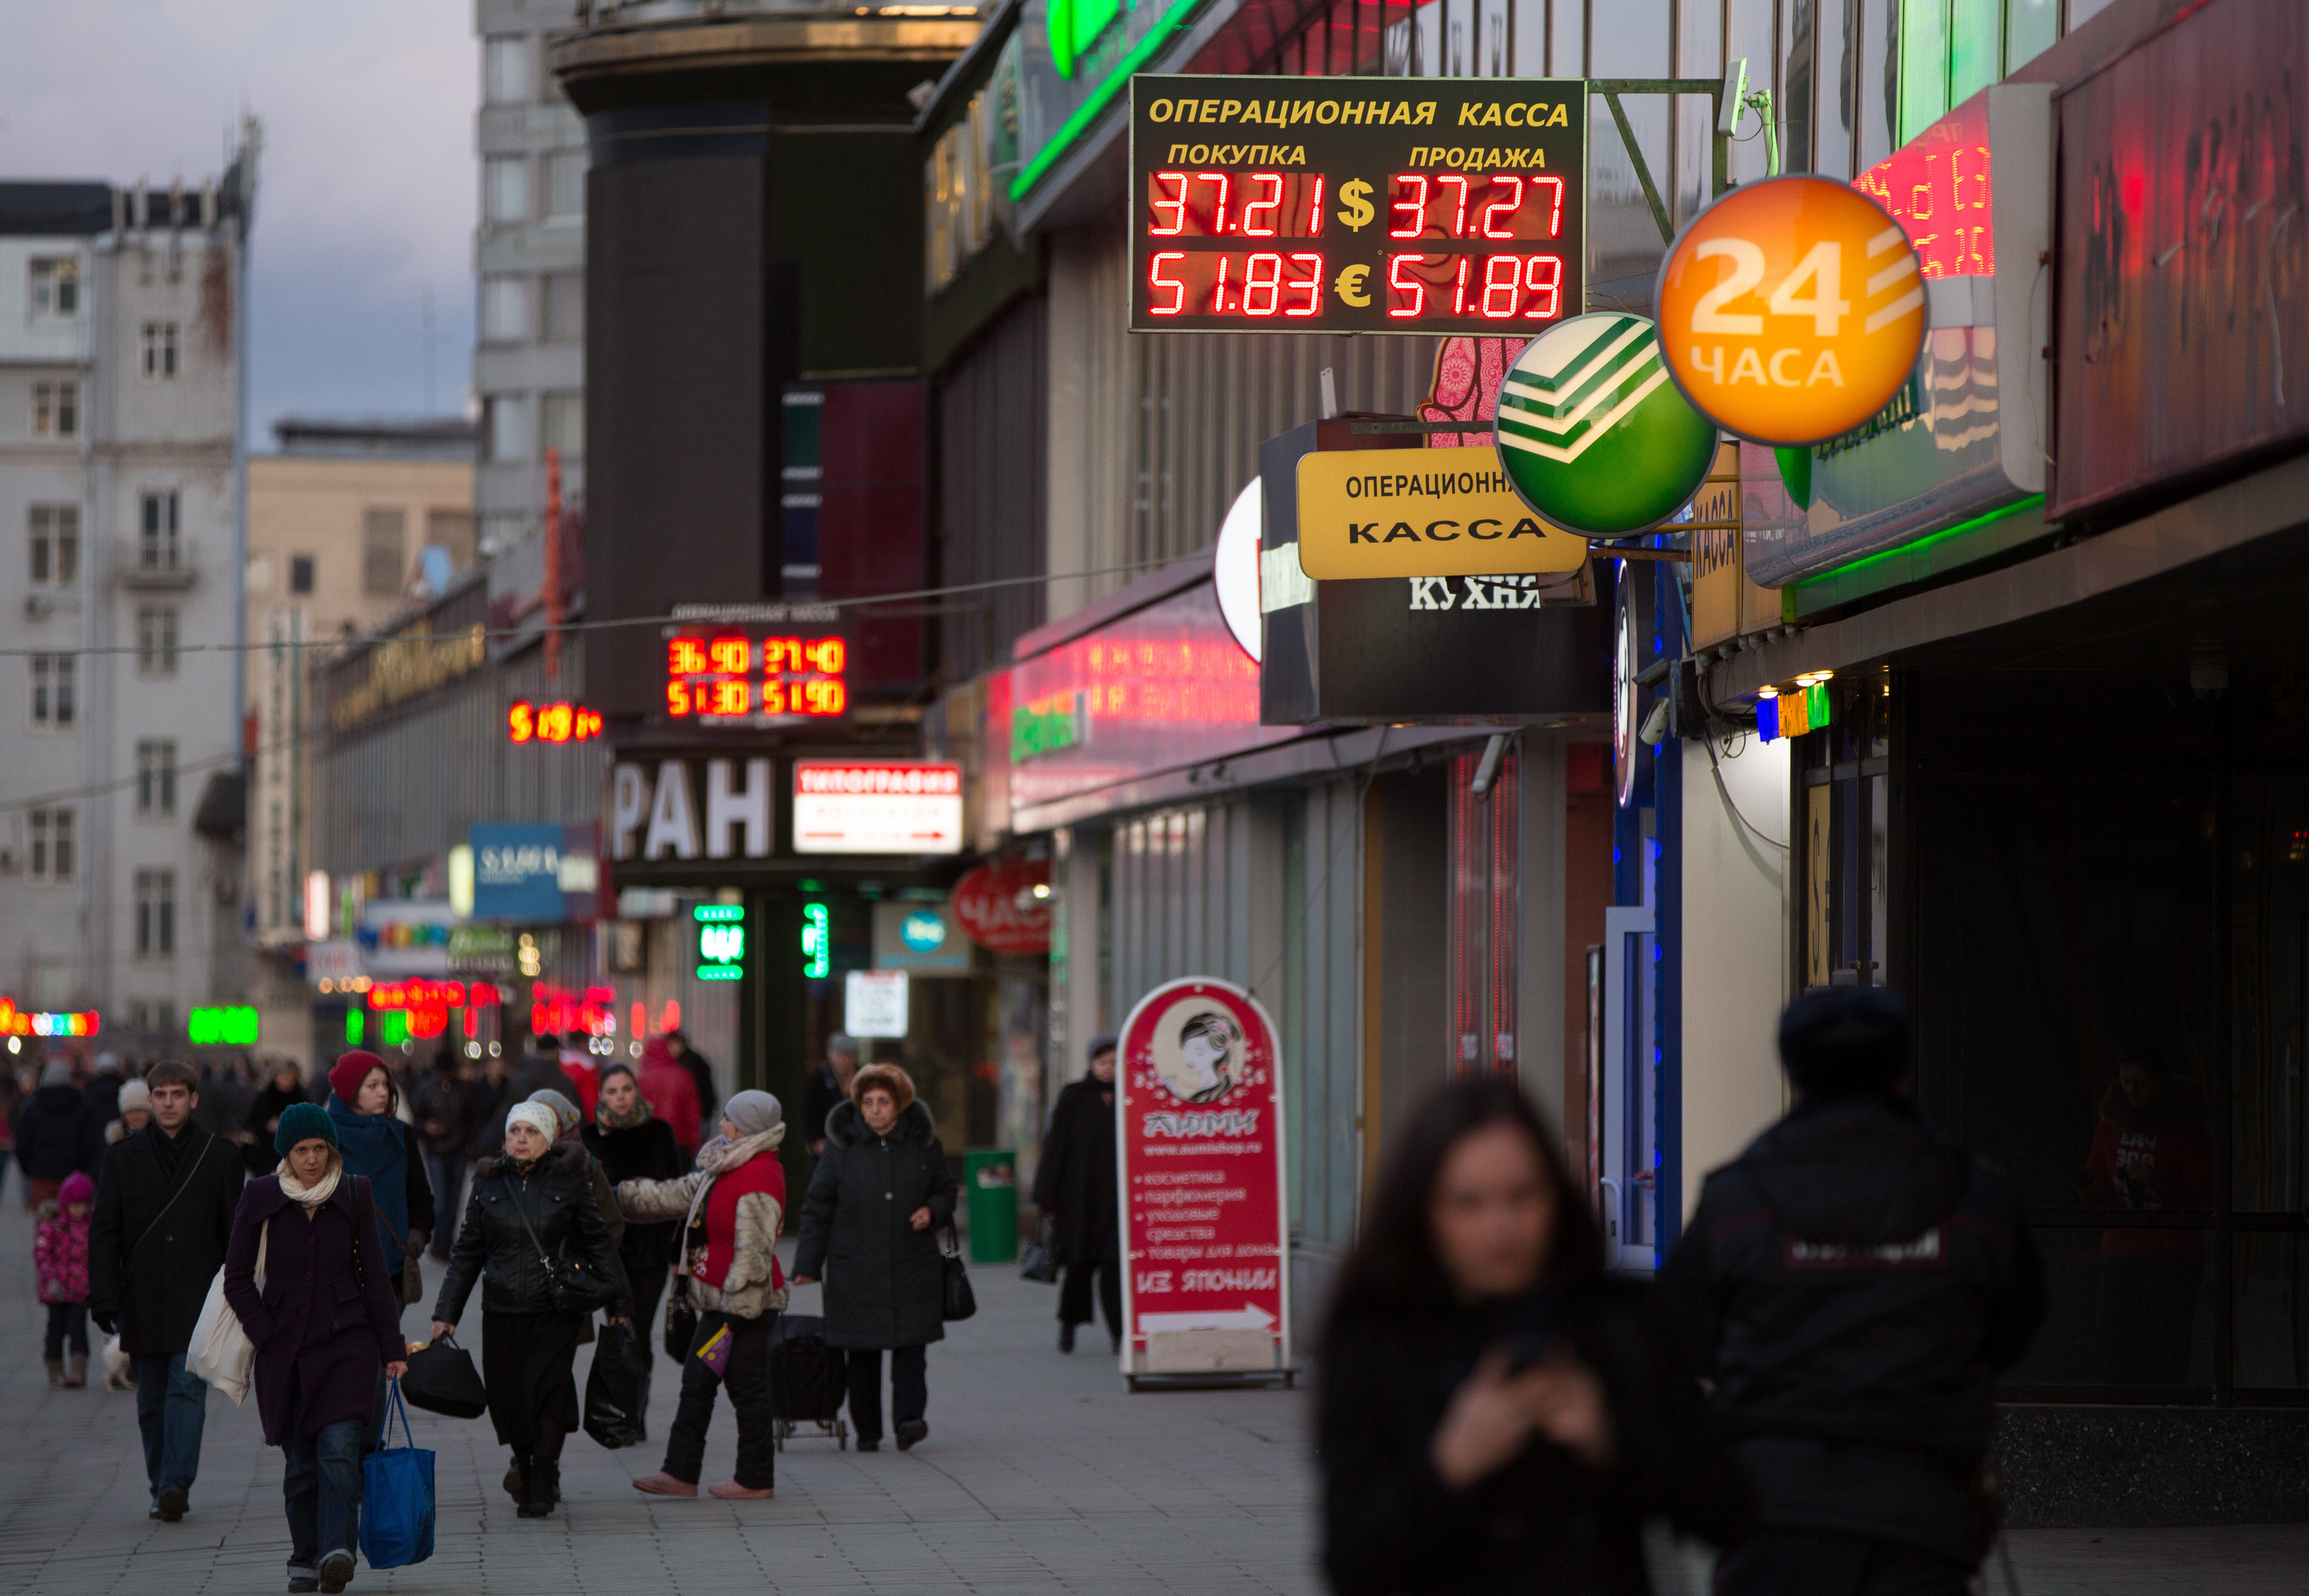 Pedestrians pass illuminated signs advertising foreign exchange rates for dollars, rubles and euros on a street in Moscow on March 17, 2014. Russian stocks have slumped 14% this month as the Ukraine crisis intensified